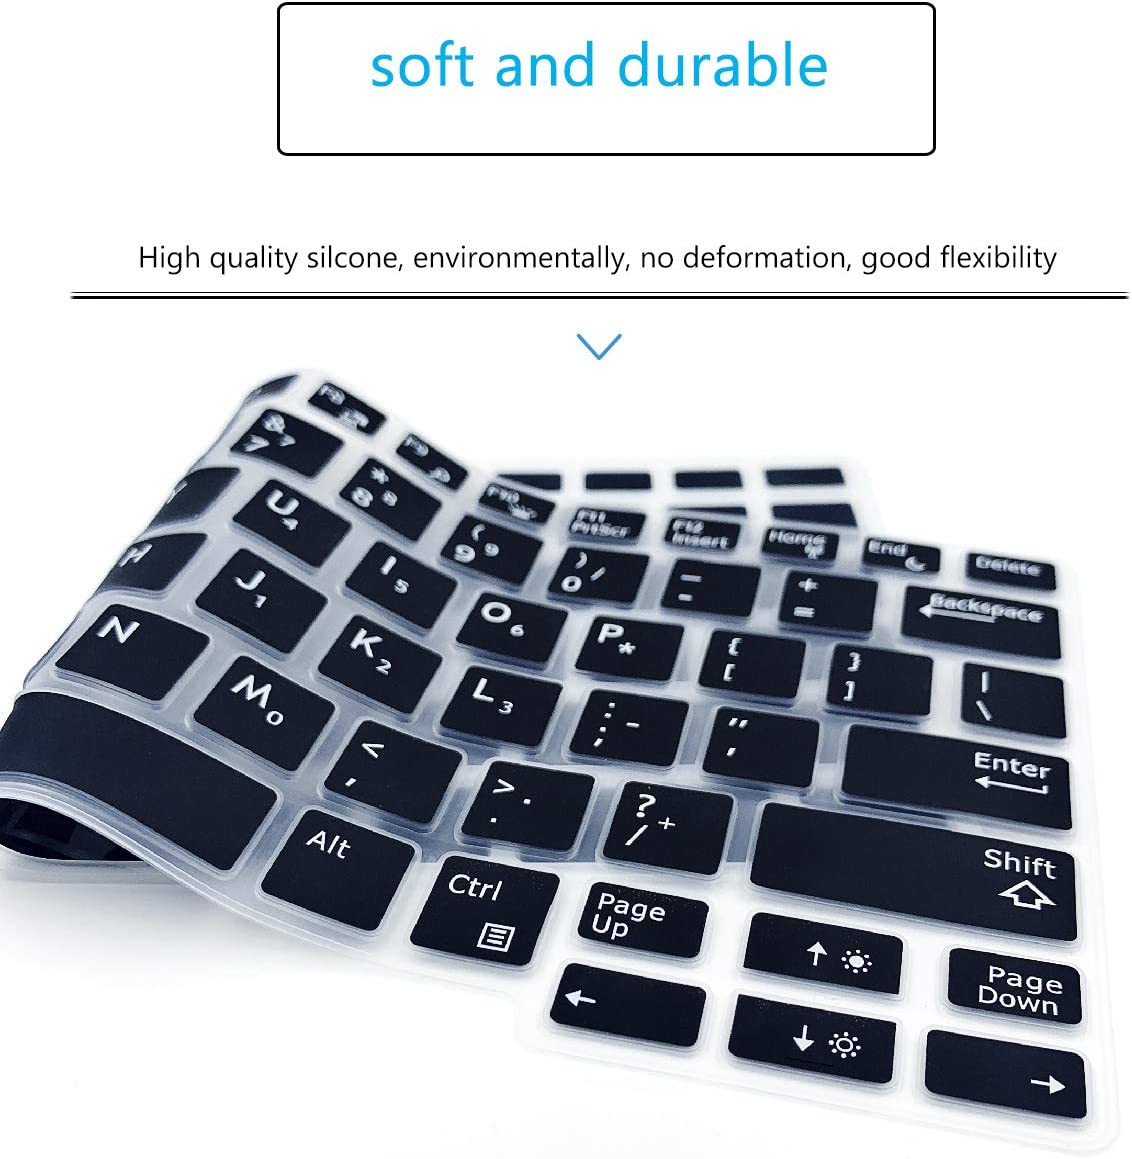 MUBUY Keyboard Cover Fit Dell Latitude 7290 7280 7380 7390 5290 Mint Green Dell Latitude E5250 E5270 E7250 E7270 E7370 E7389 Soft-Touch Protective Skin